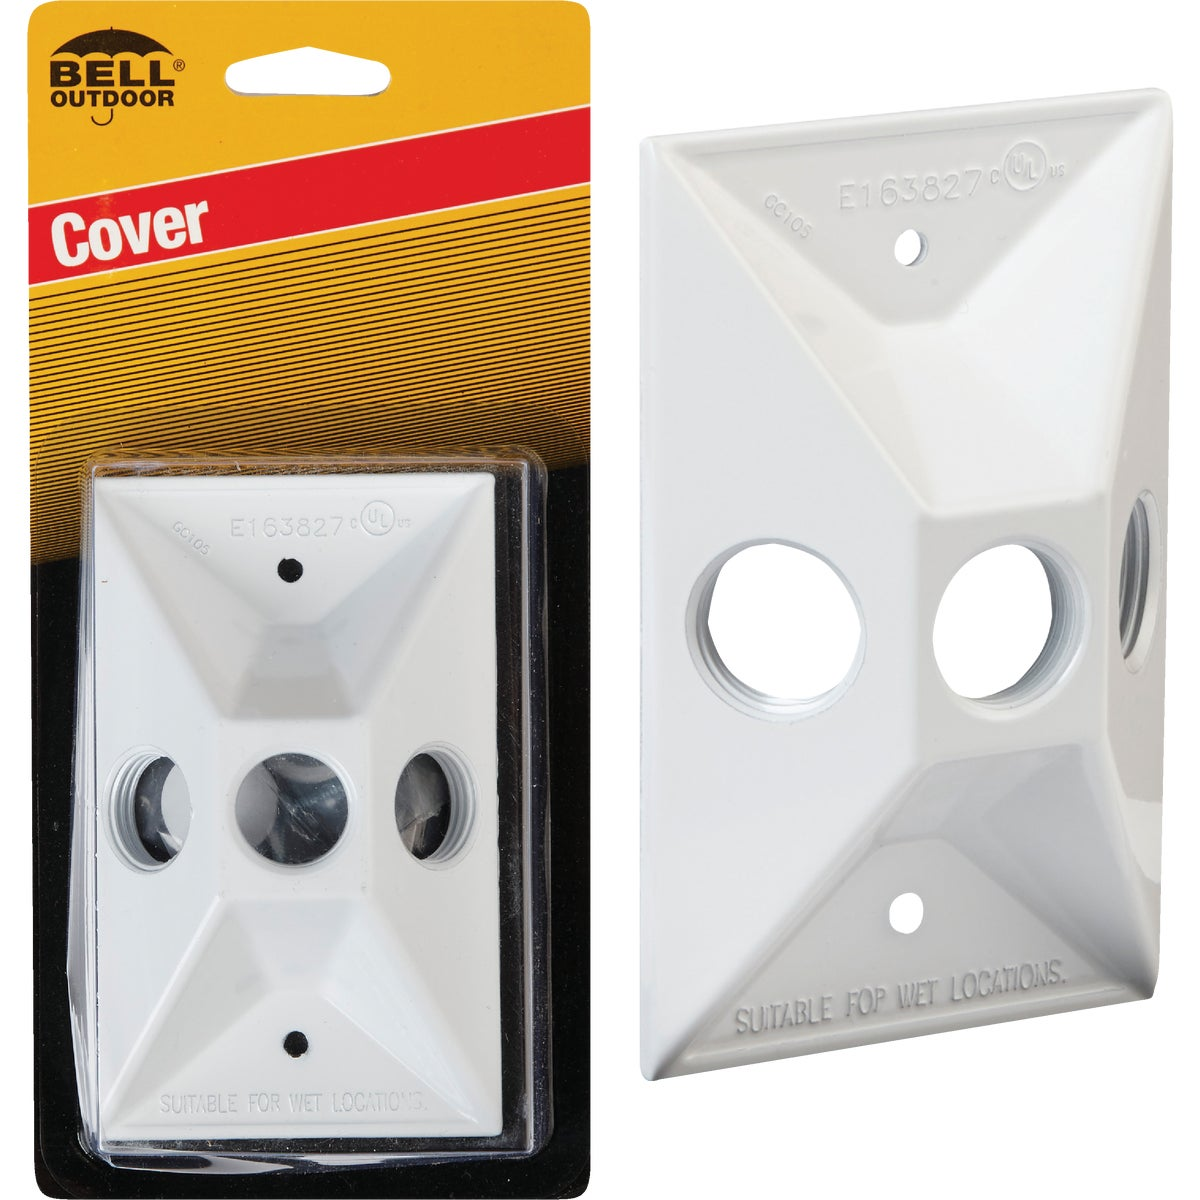 Do it Weatherproof Electrical Cover